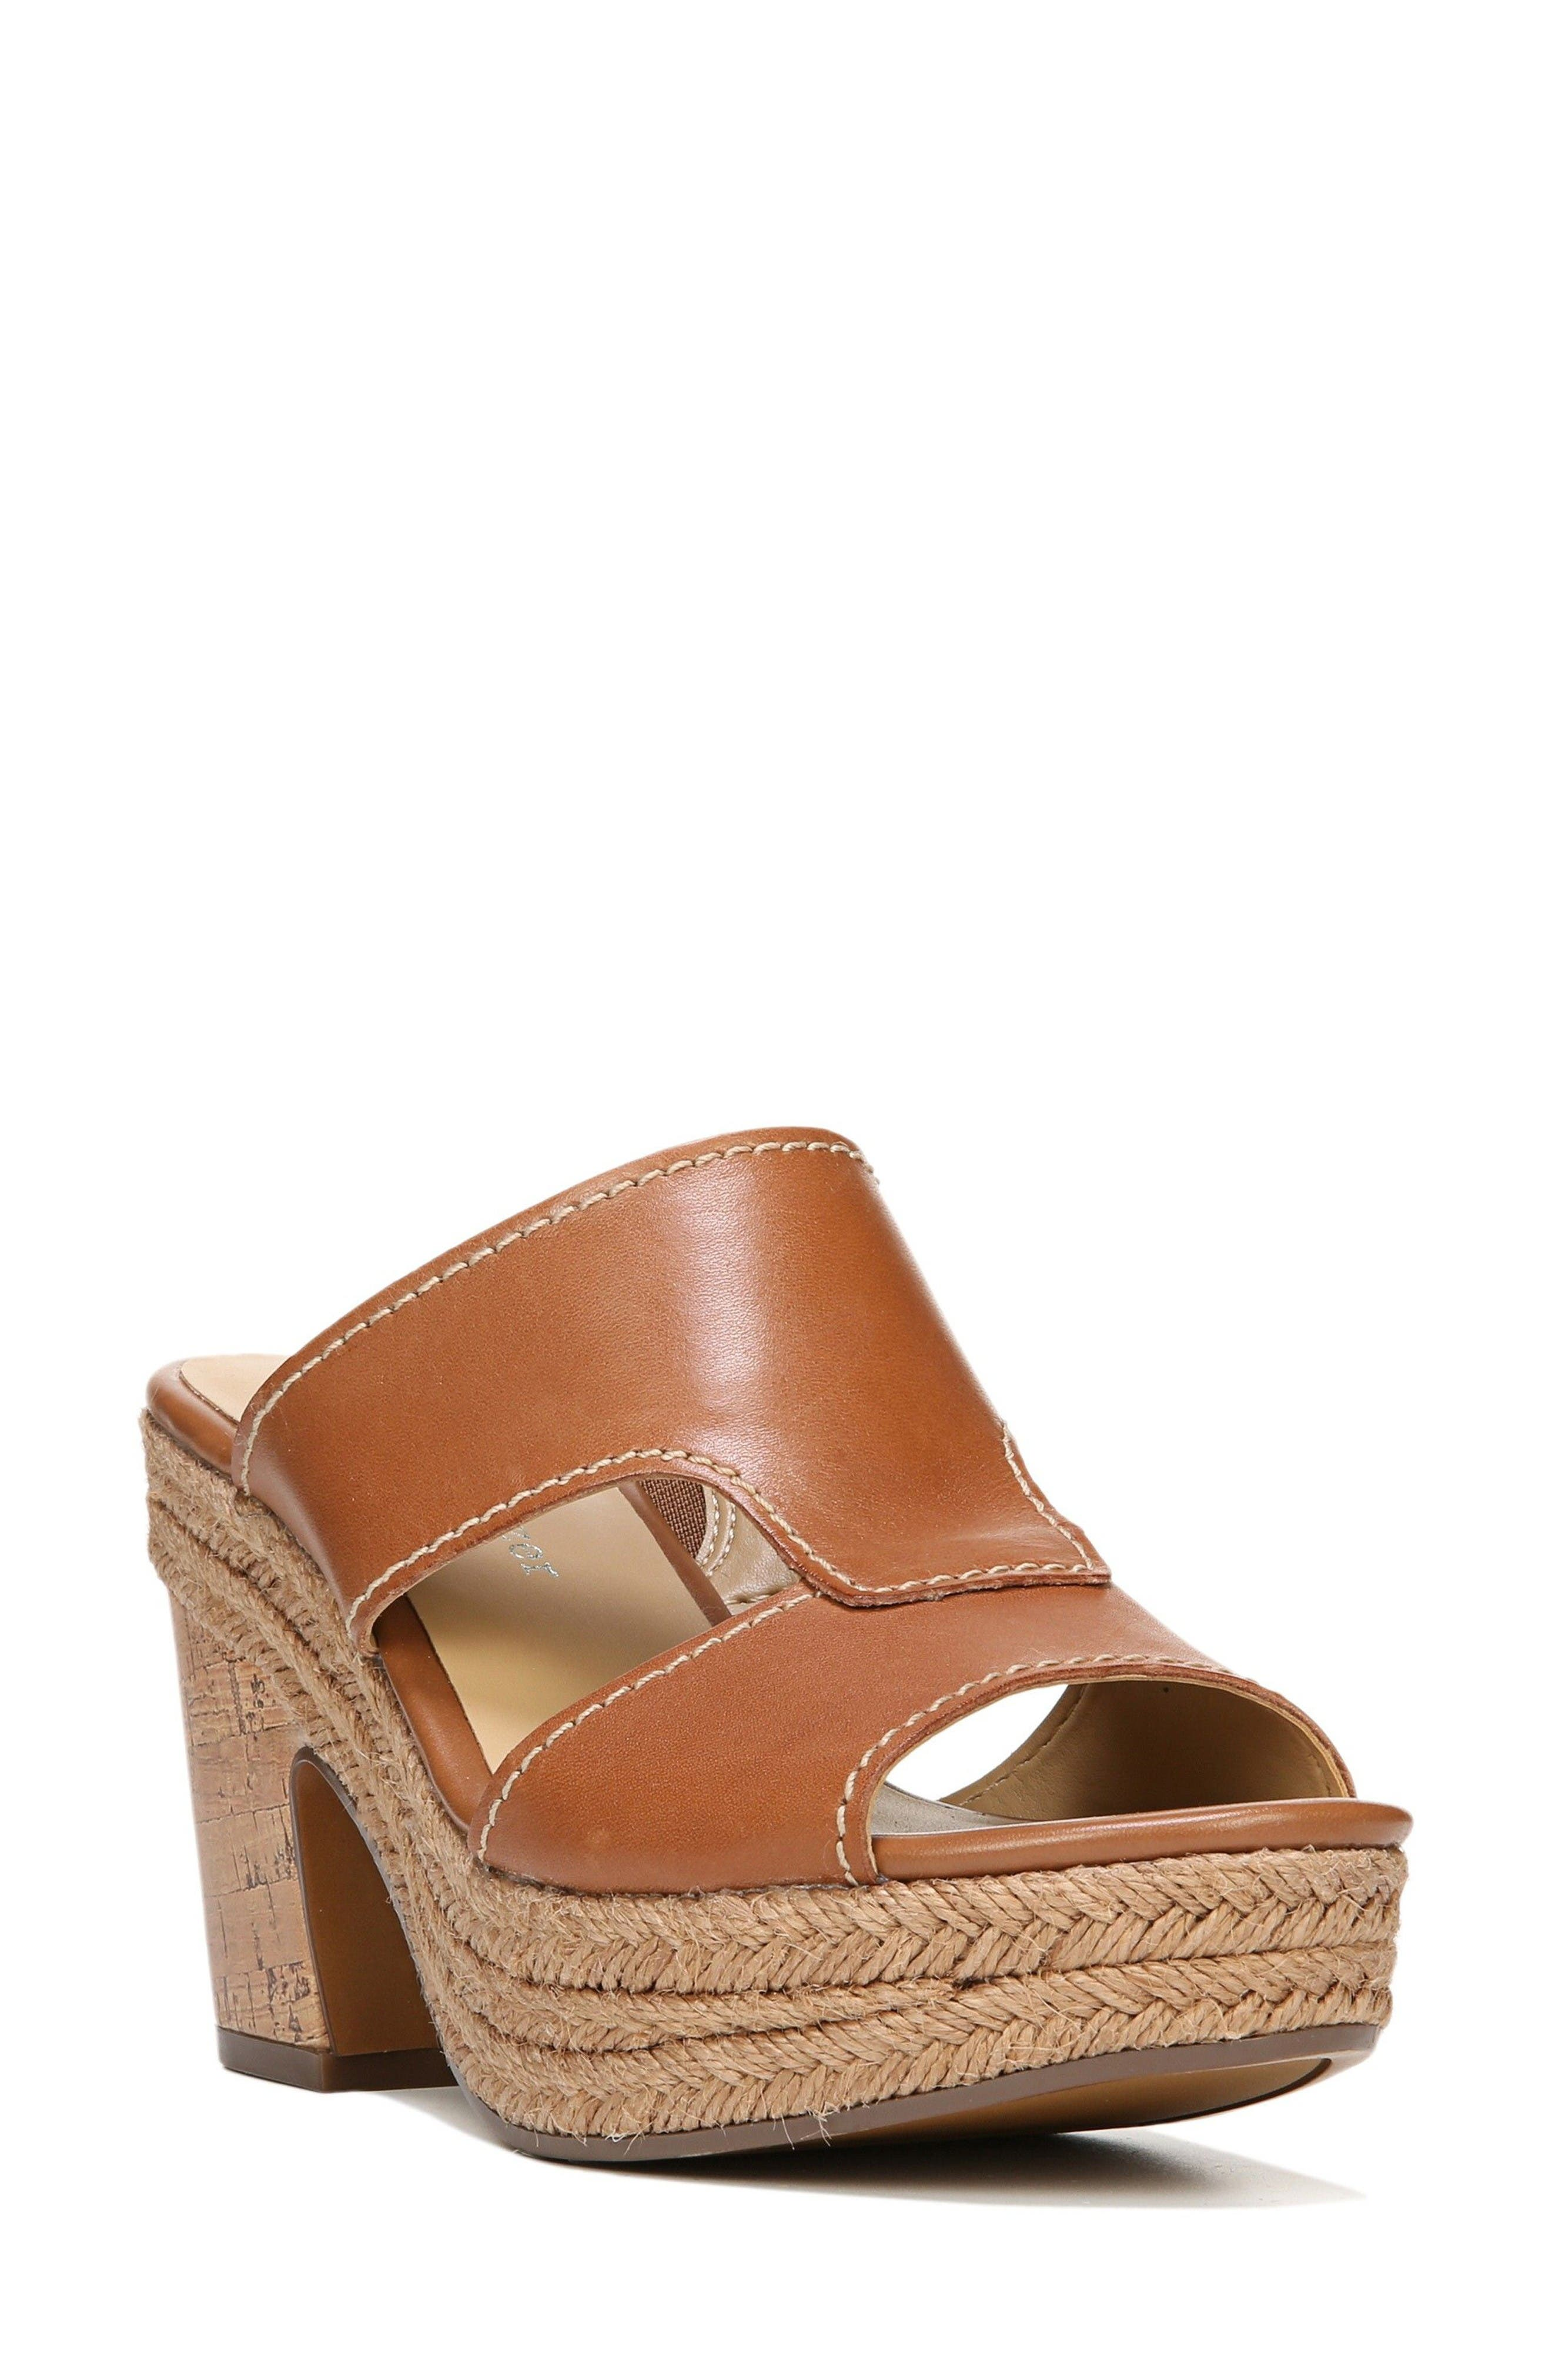 Alternate Image 1 Selected - Naturalizer Evette Sandal (Women)